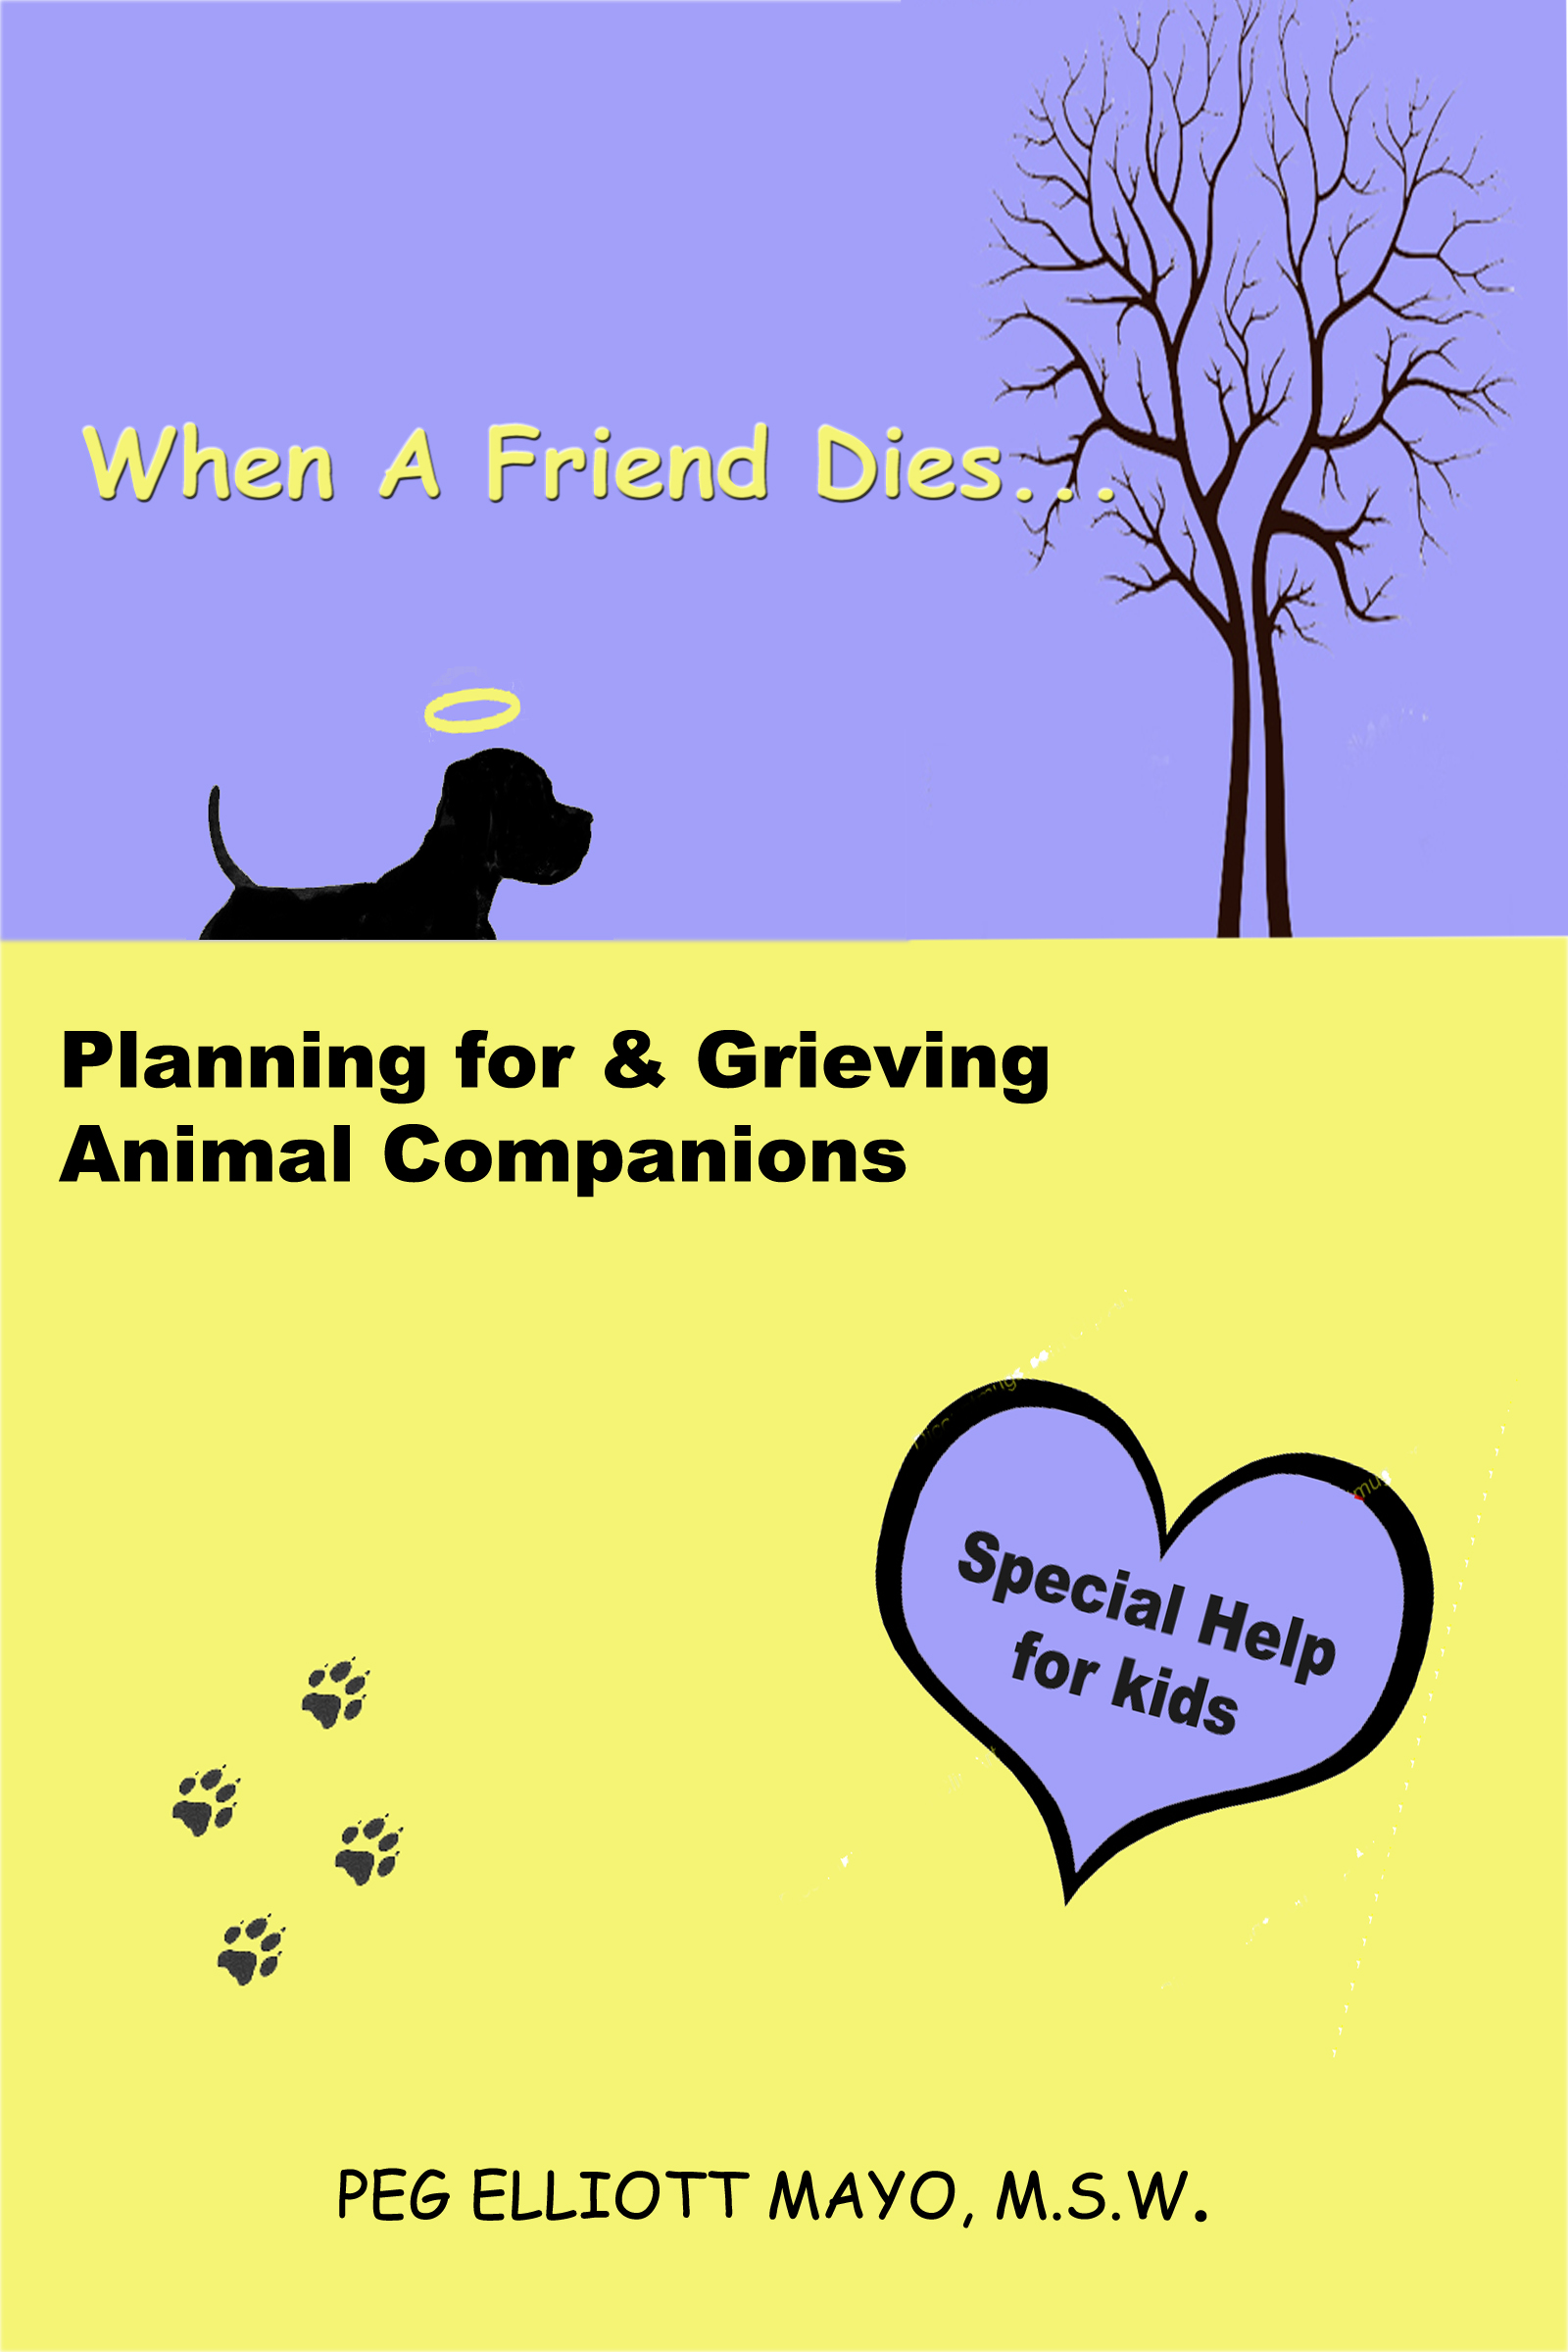 When A Friend Dies: Planning for & Grieving Animal Companions